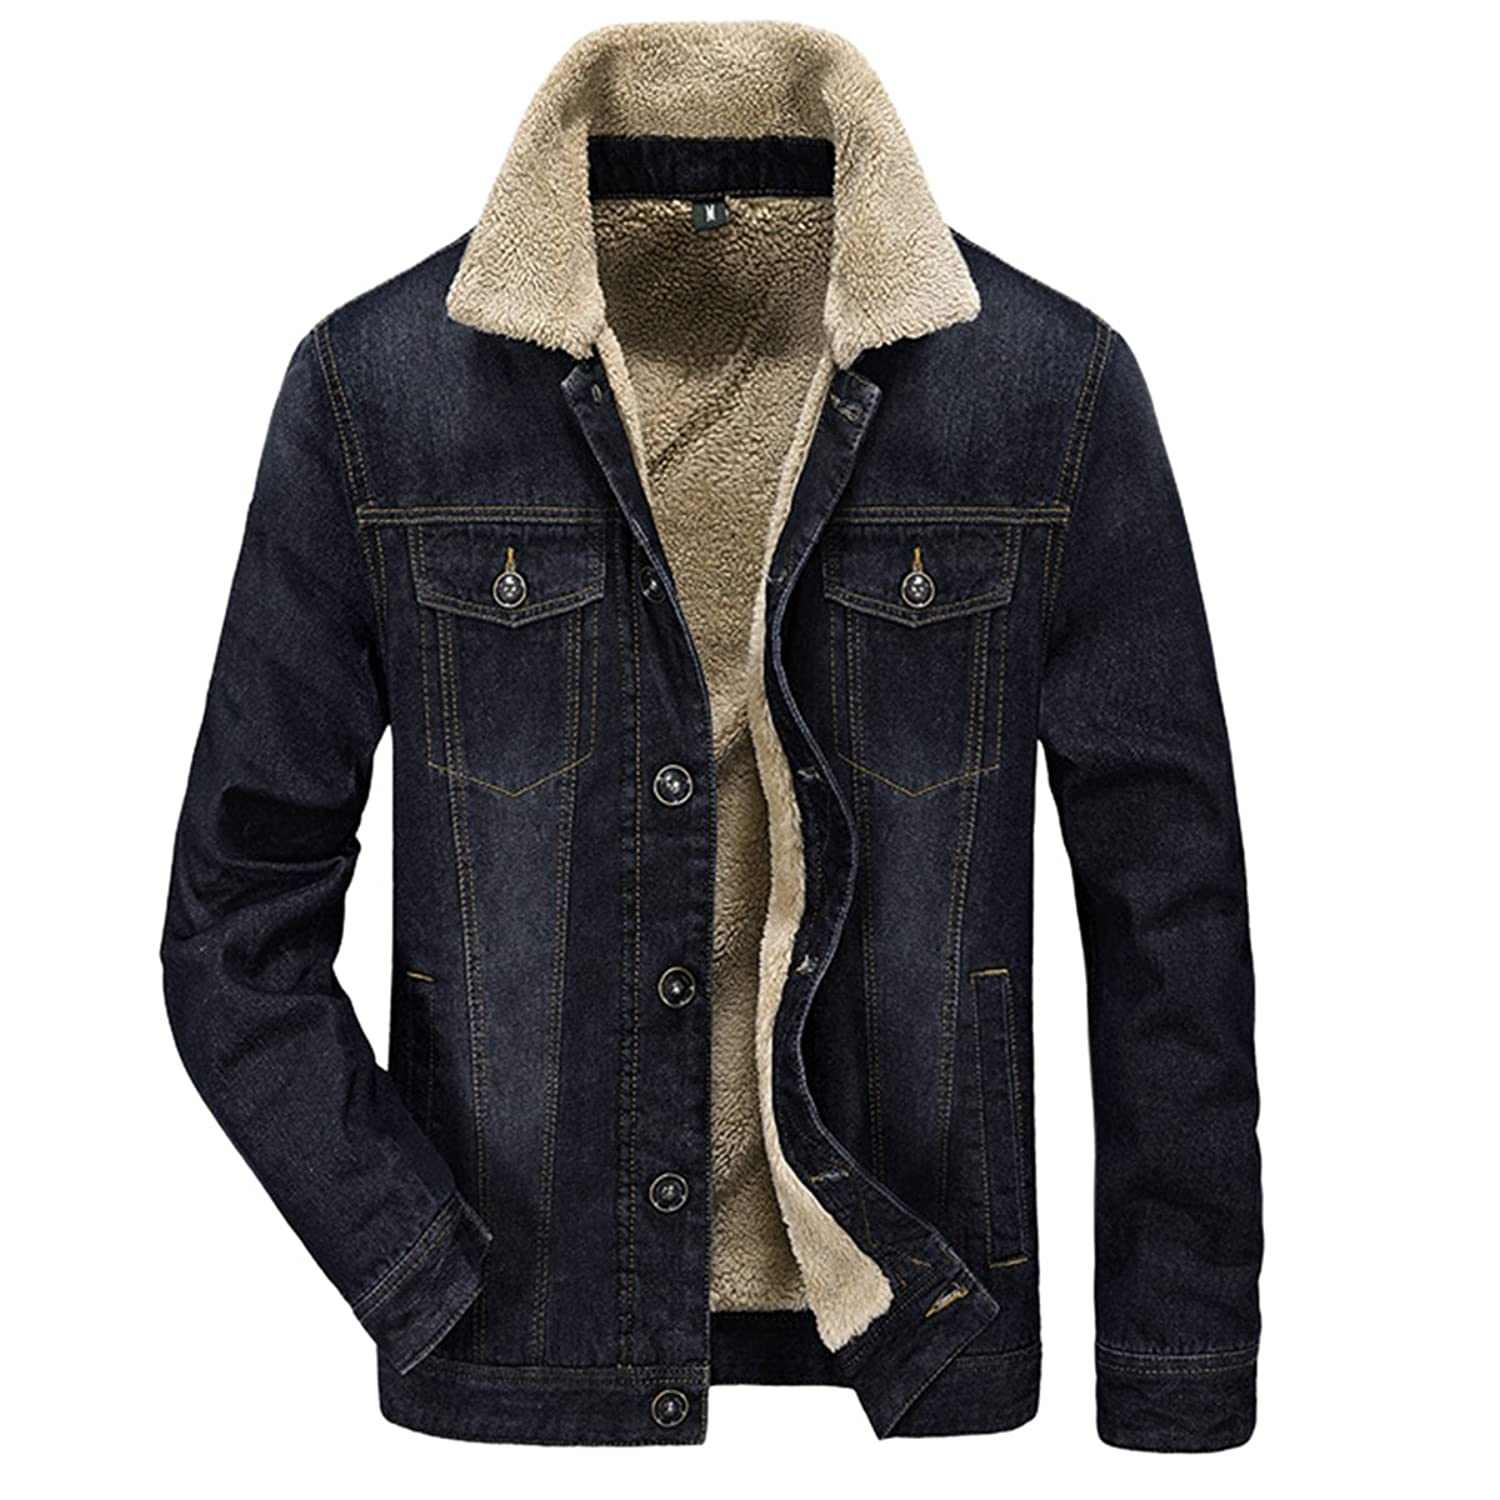 Sue&Joe Men's Denim Jacket Warm Sherpa Collar Slim Fit Lined Outwear Parka Tops